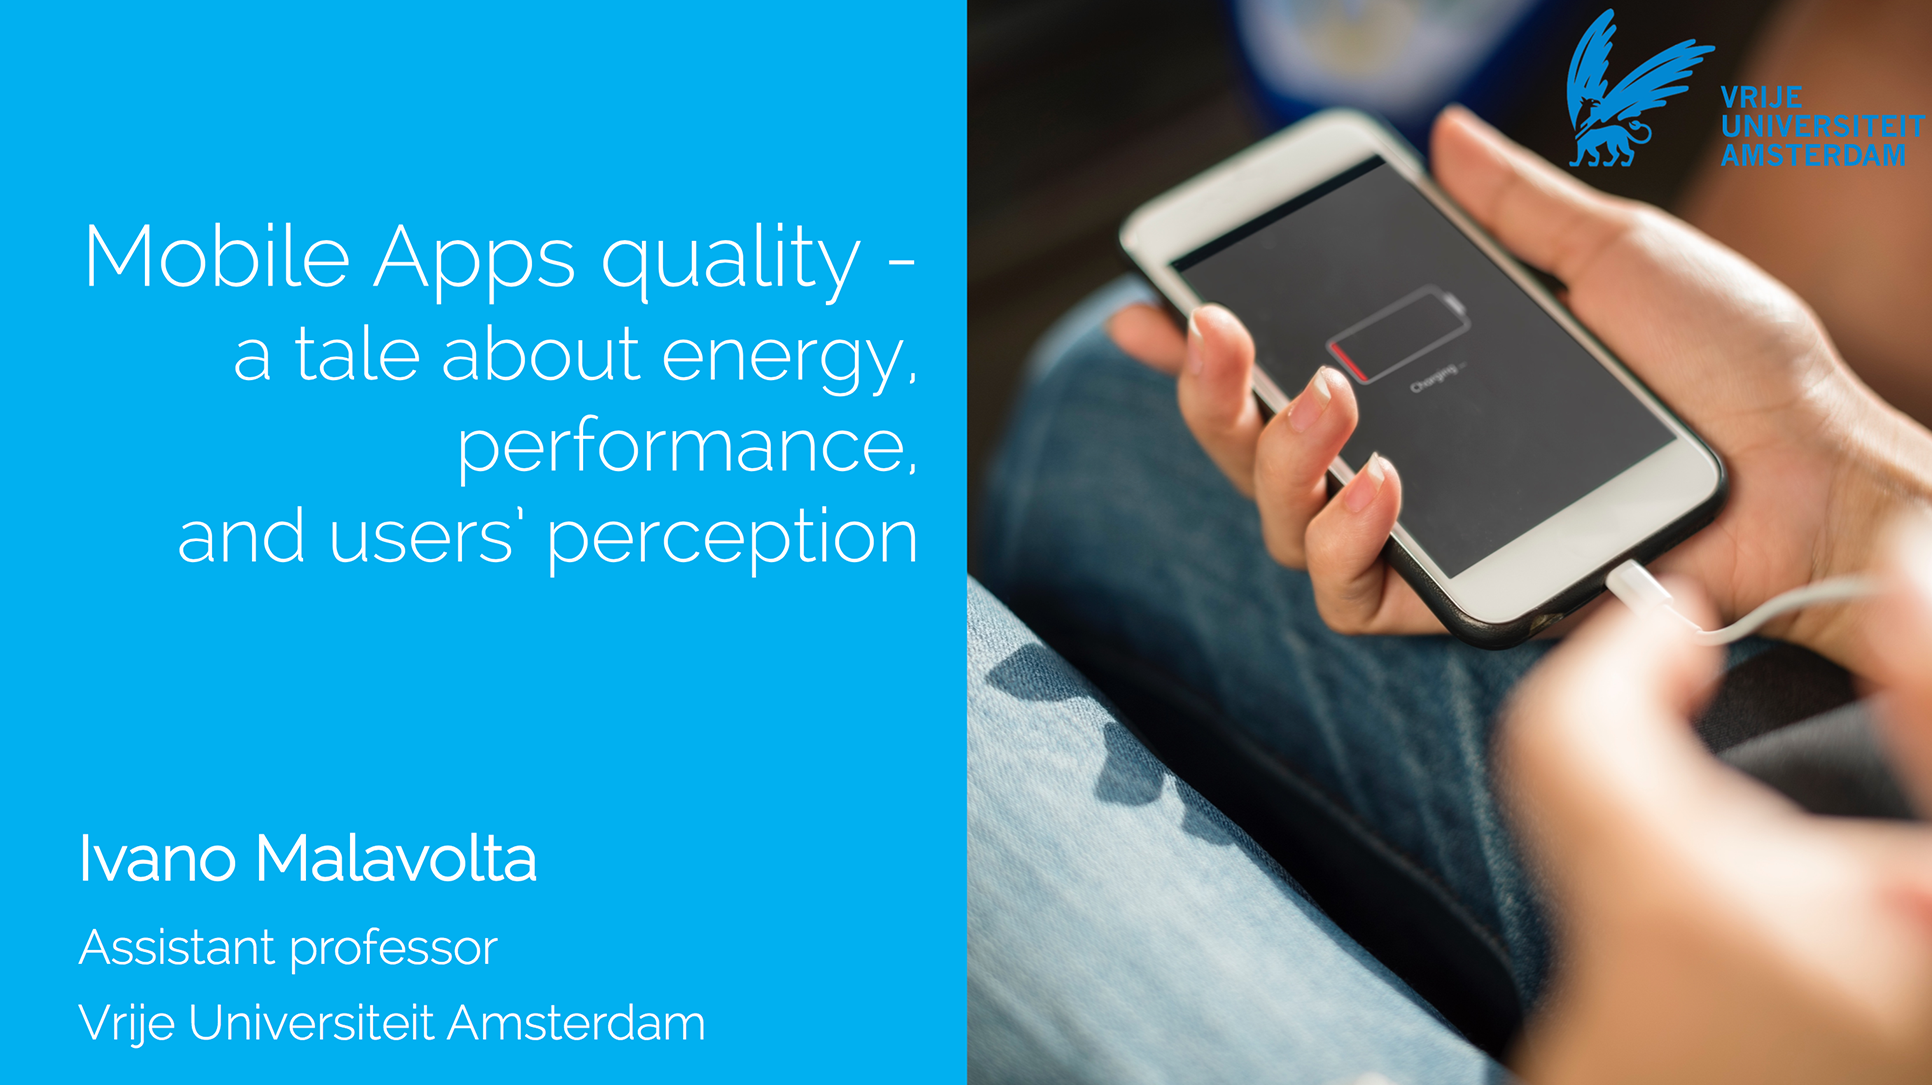 Mobile Apps quality – a tale about energy, performance, and users' perception